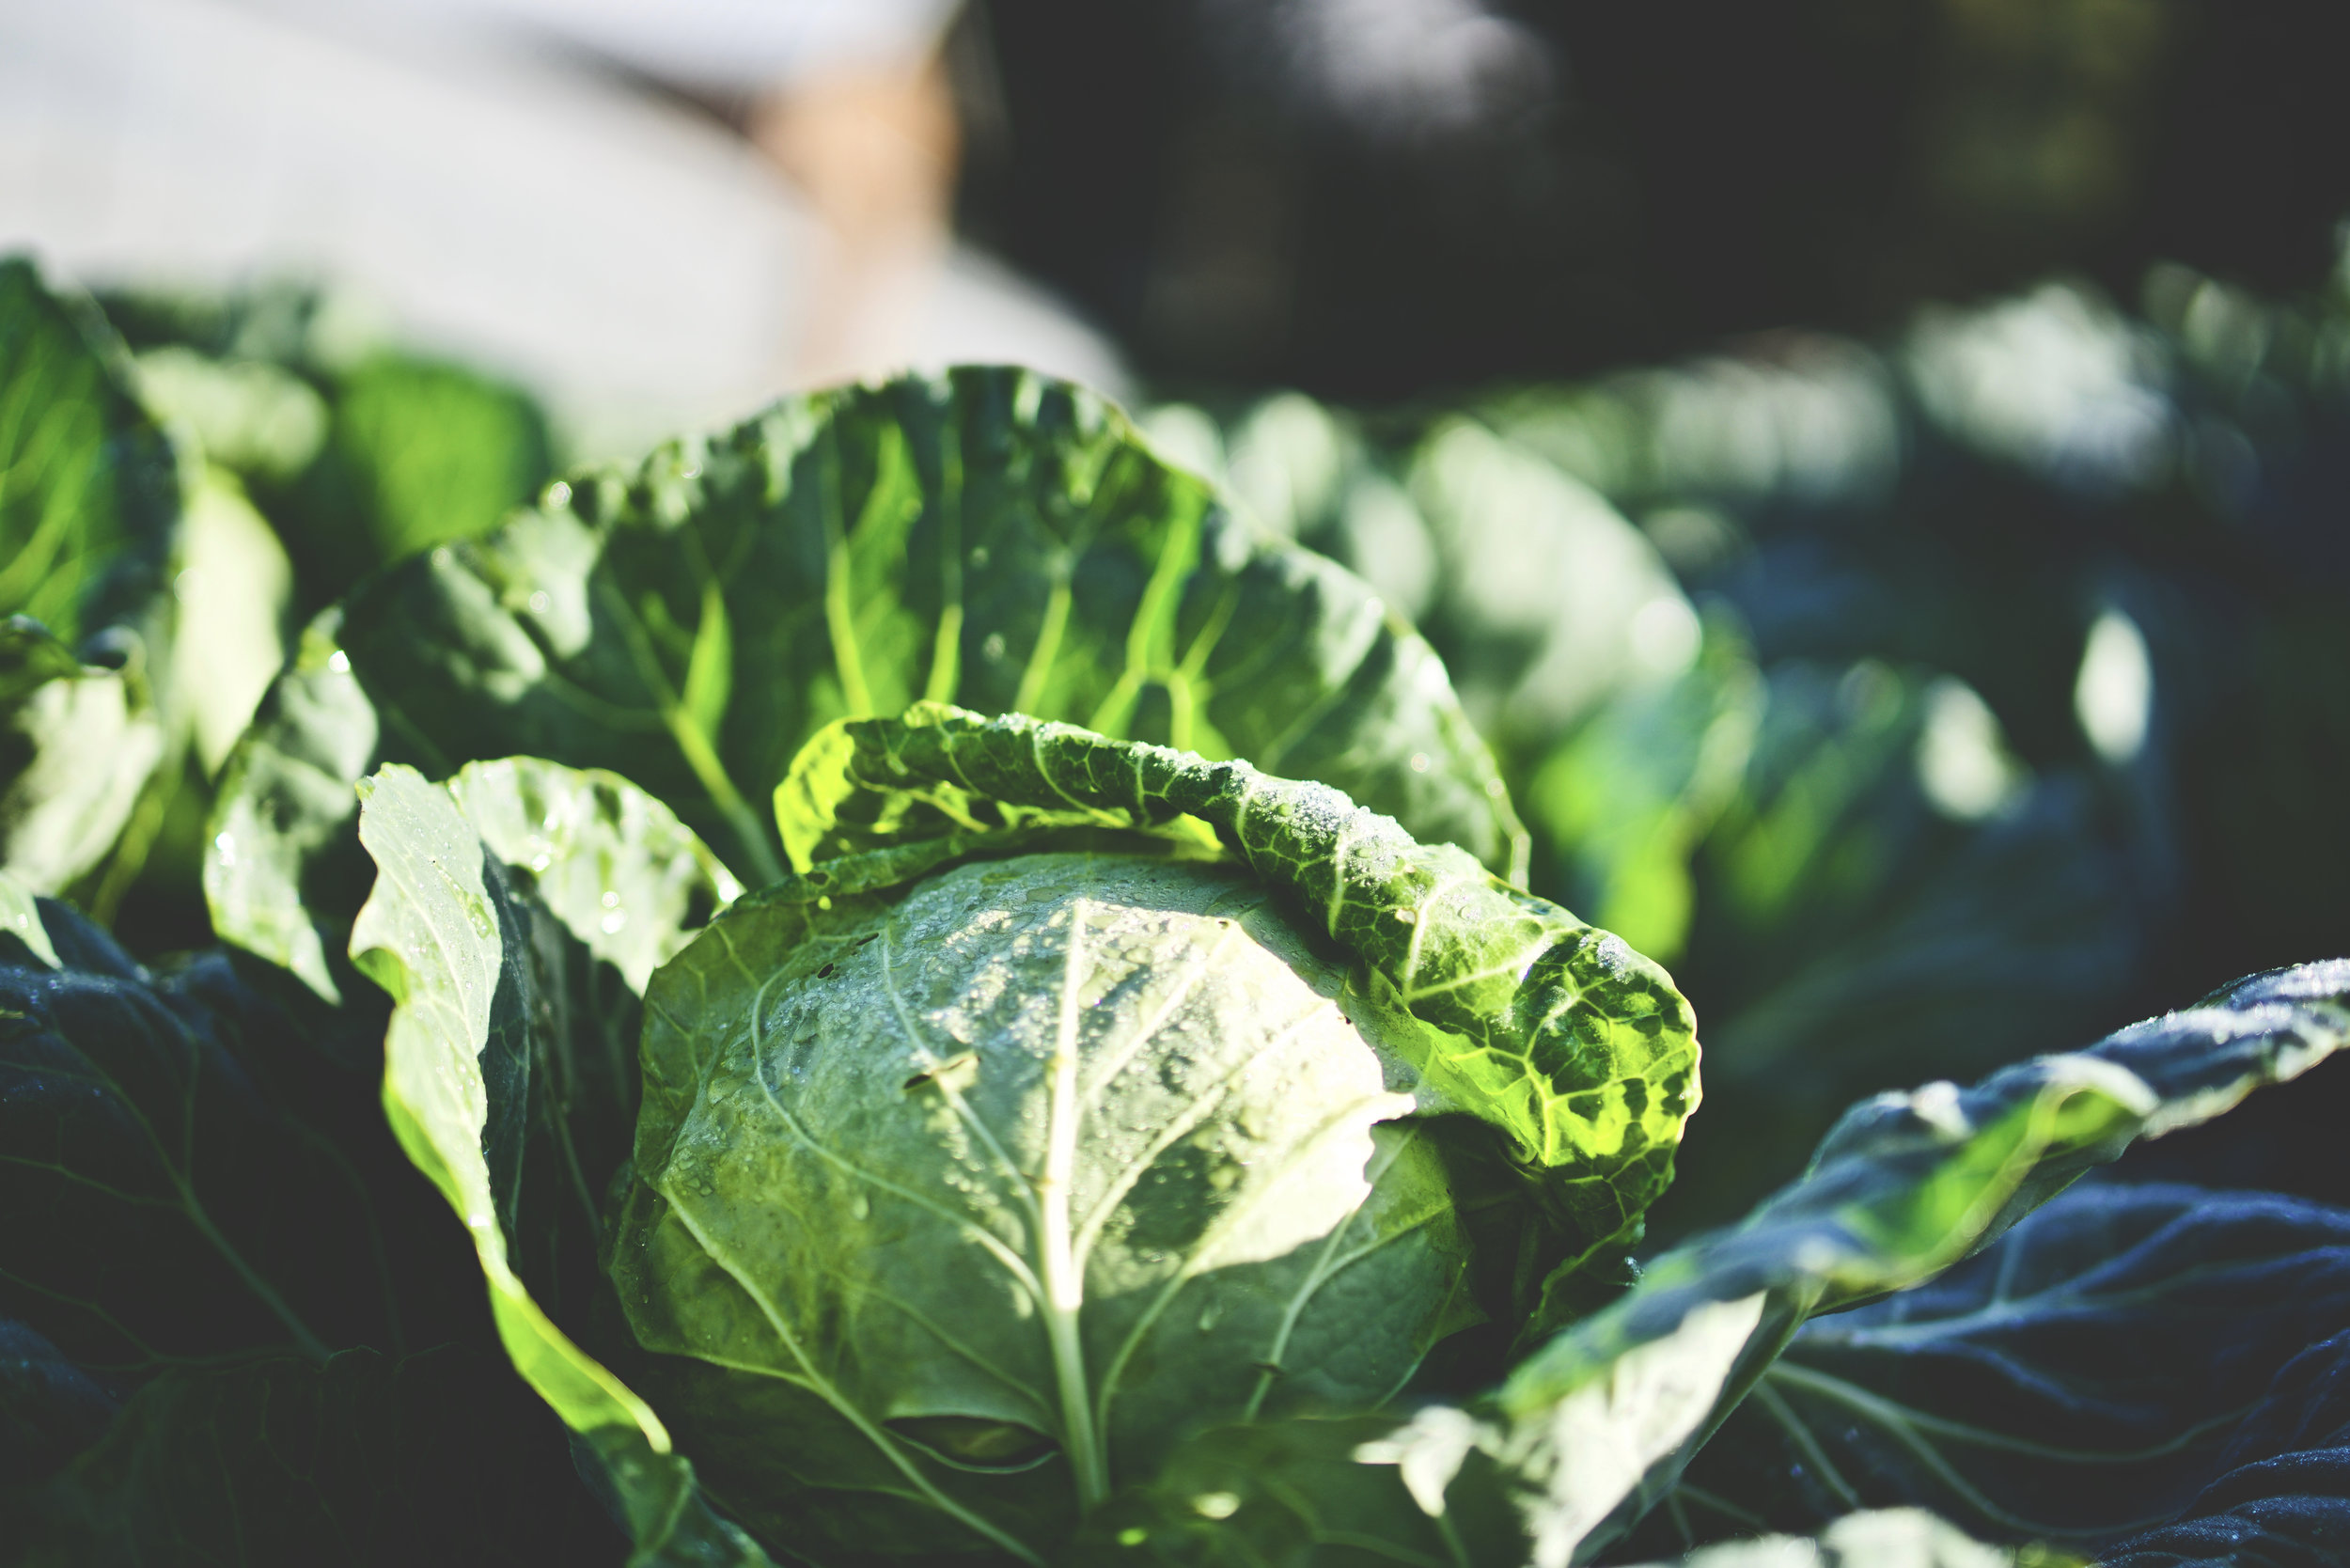 cabbages - Only two of more than 700 cabbage samples contained more than one pesticide residue.86 percent of cabbage samples contained no detectable pesticide residue.